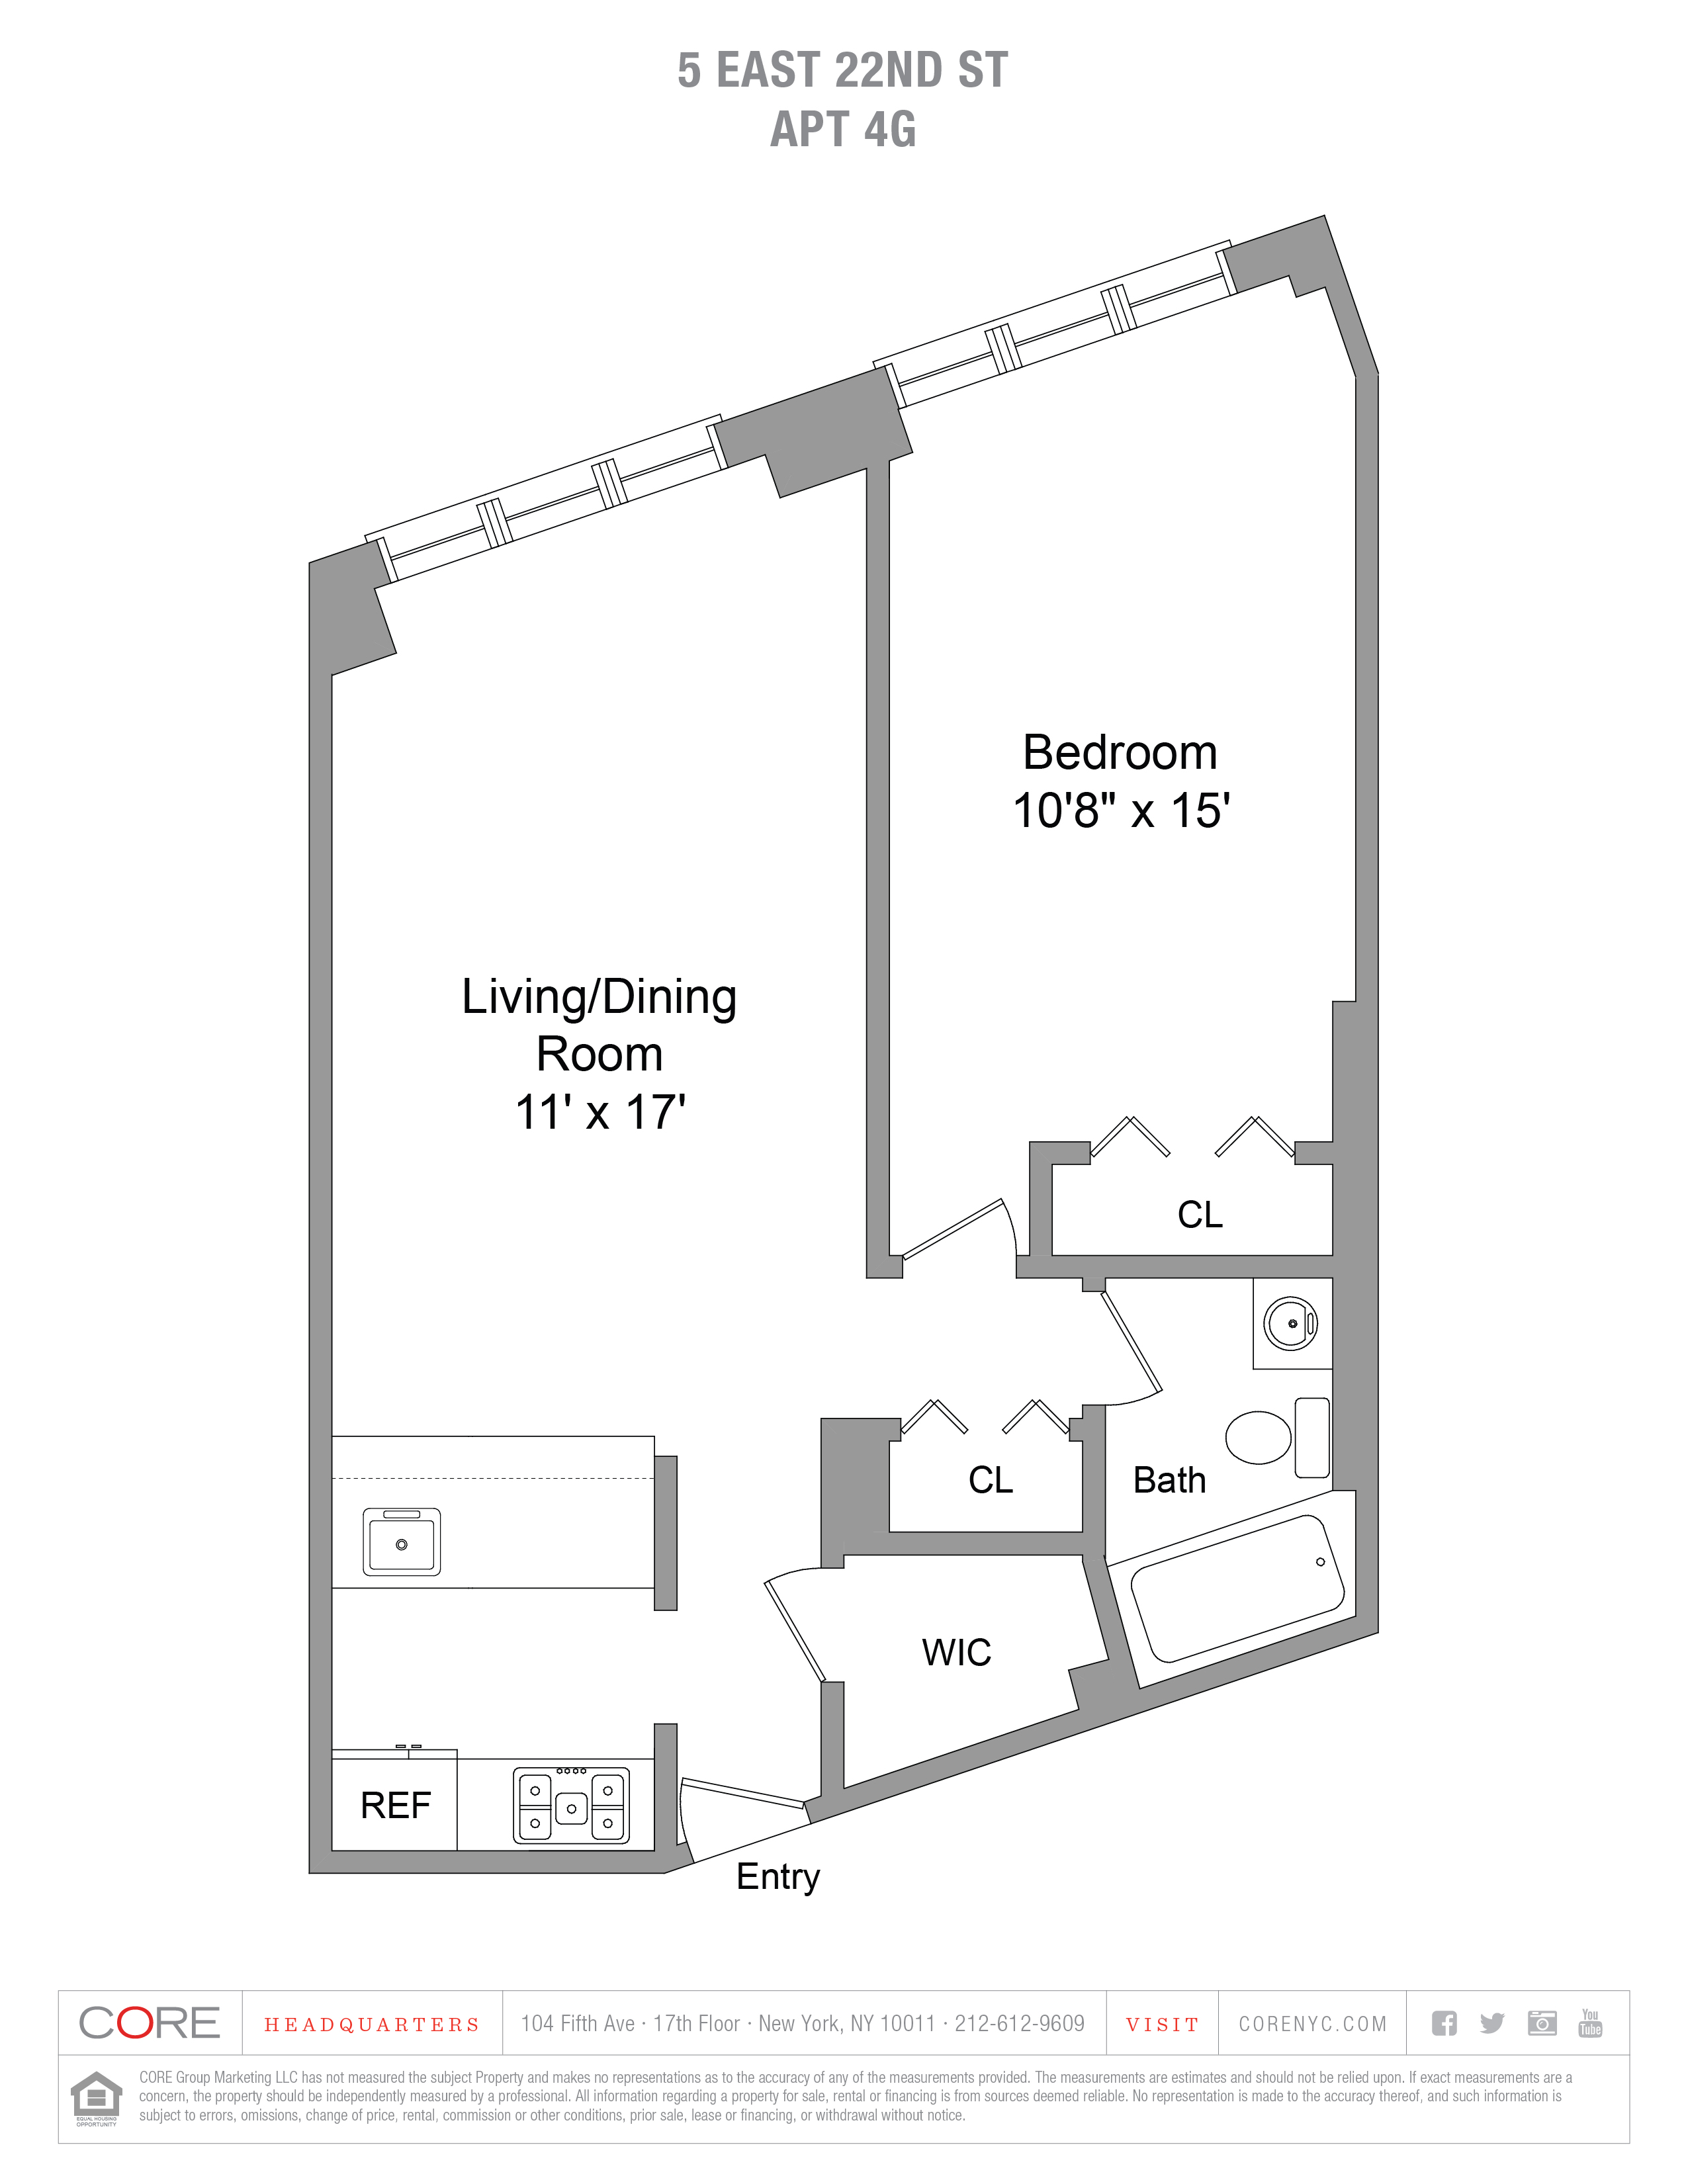 5 East 22nd St. 4G, New York, NY 10010